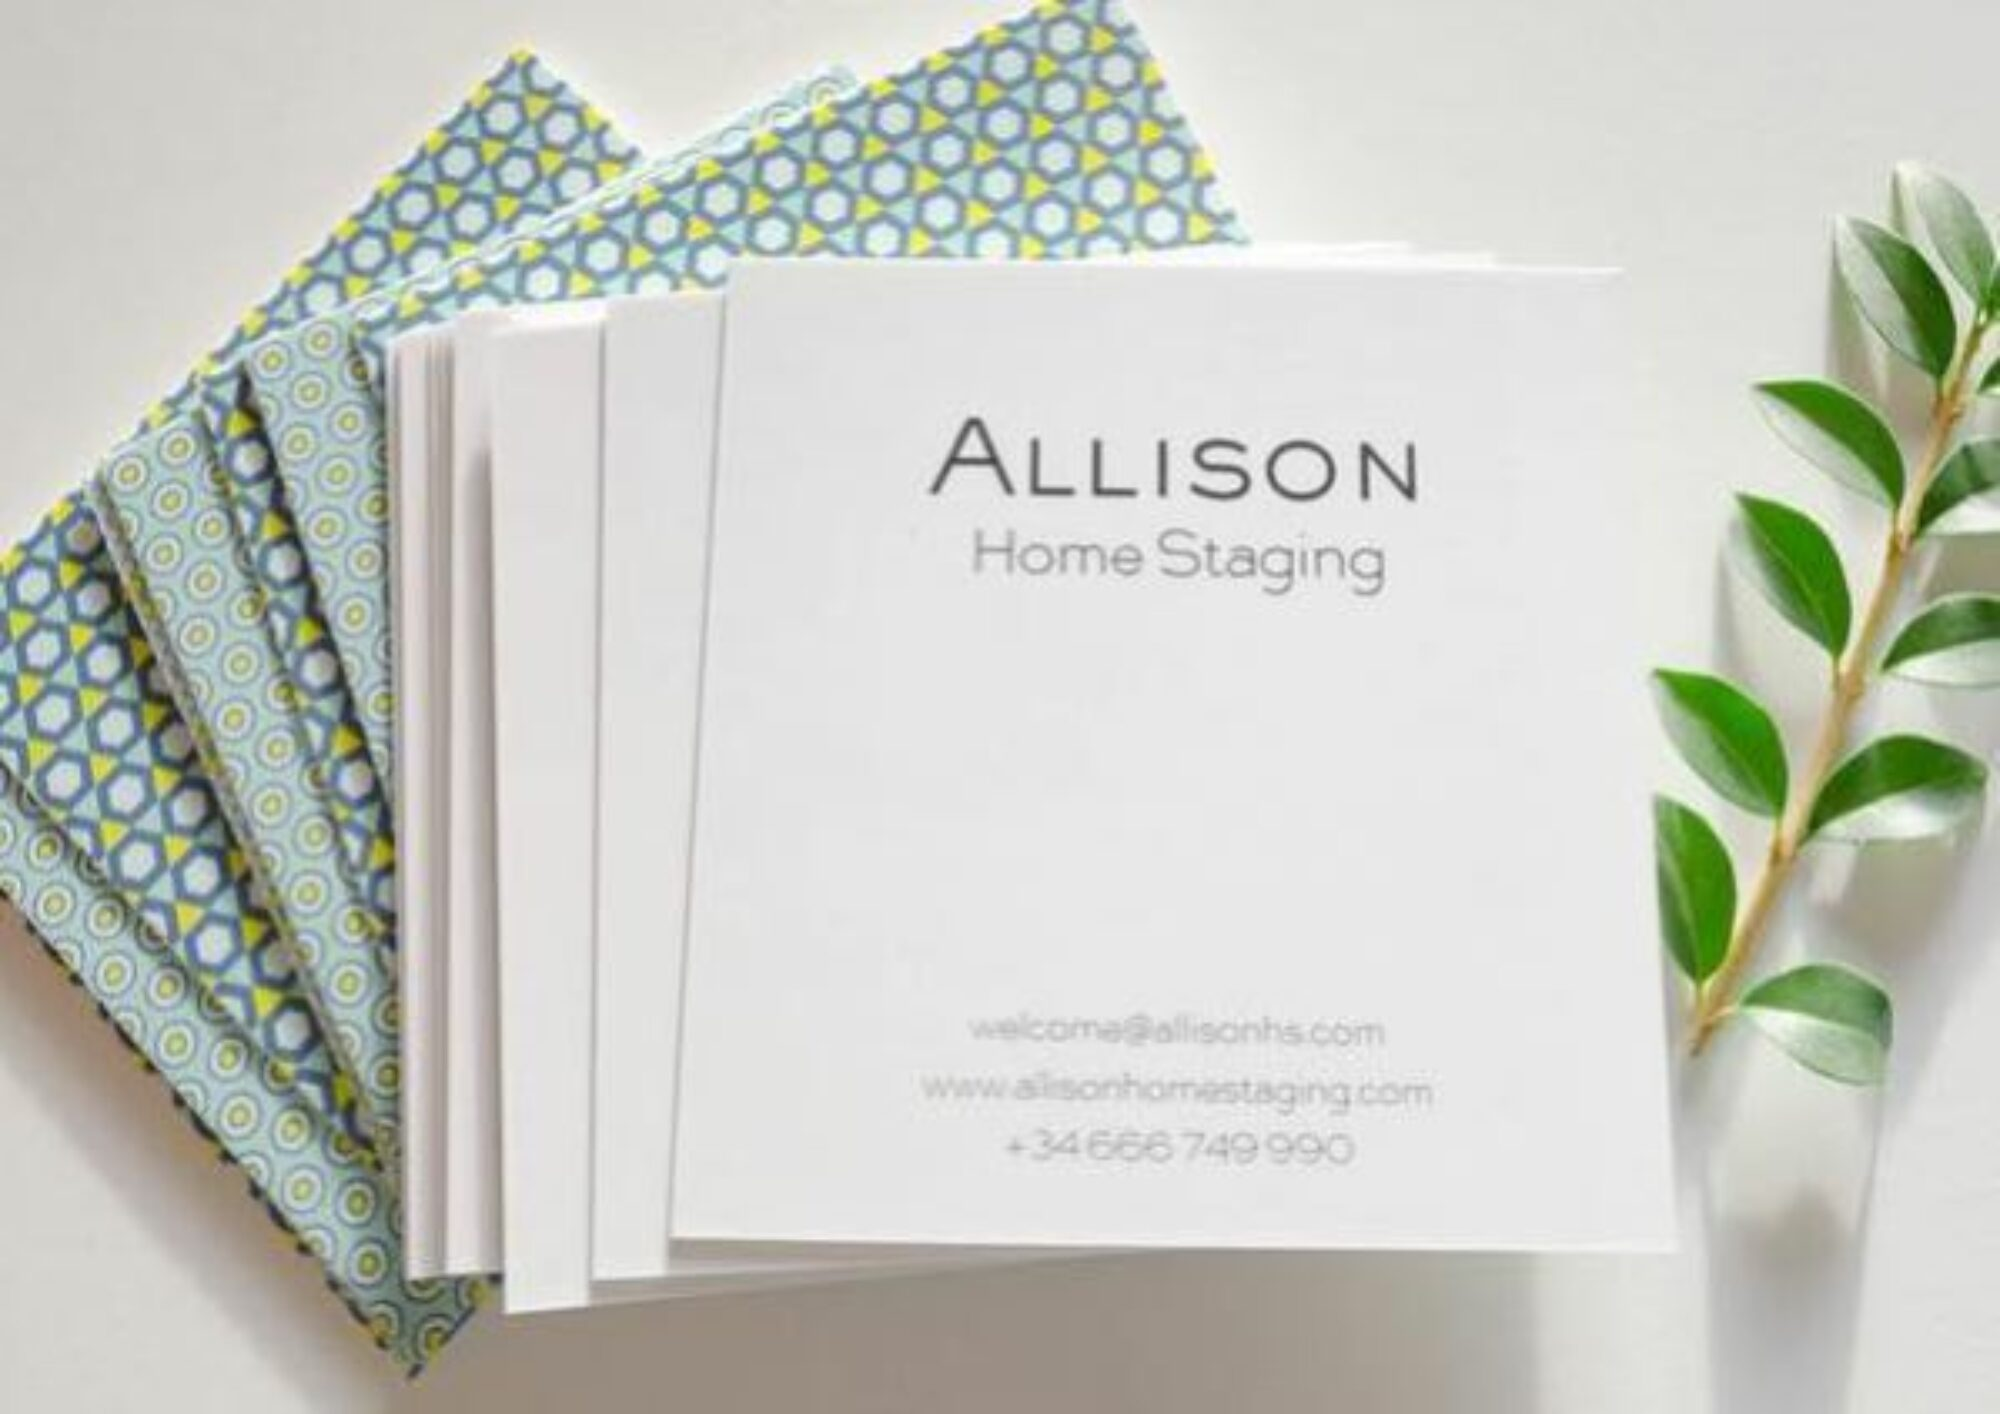 Allison Home Staging